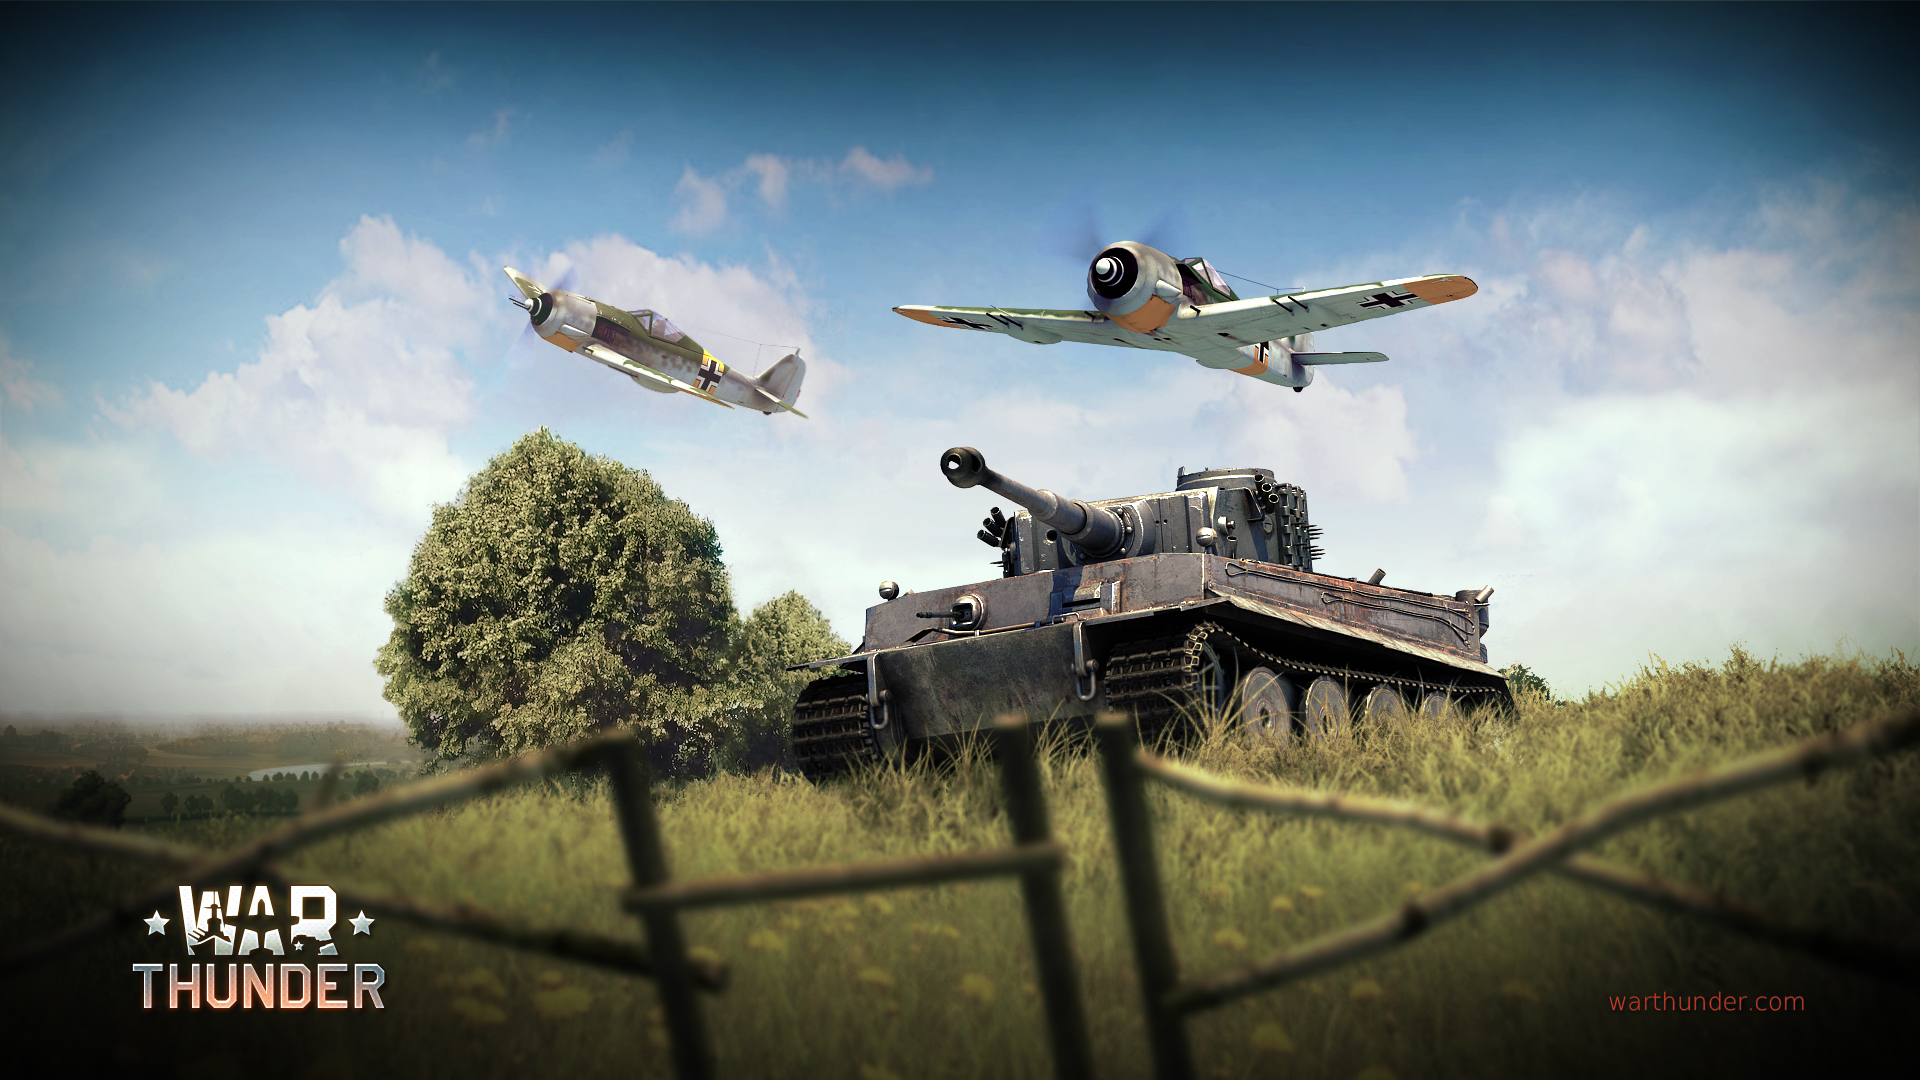 helicopter war game free download with 451 War Thunder Loading Screens On Your Desktop En on 32108 furthermore T92 Heavy Siege Tank Doombringer 295462474 besides Military Equipment Set Vector  bat Air 593750801 together with War Thunder moreover Helicopters.